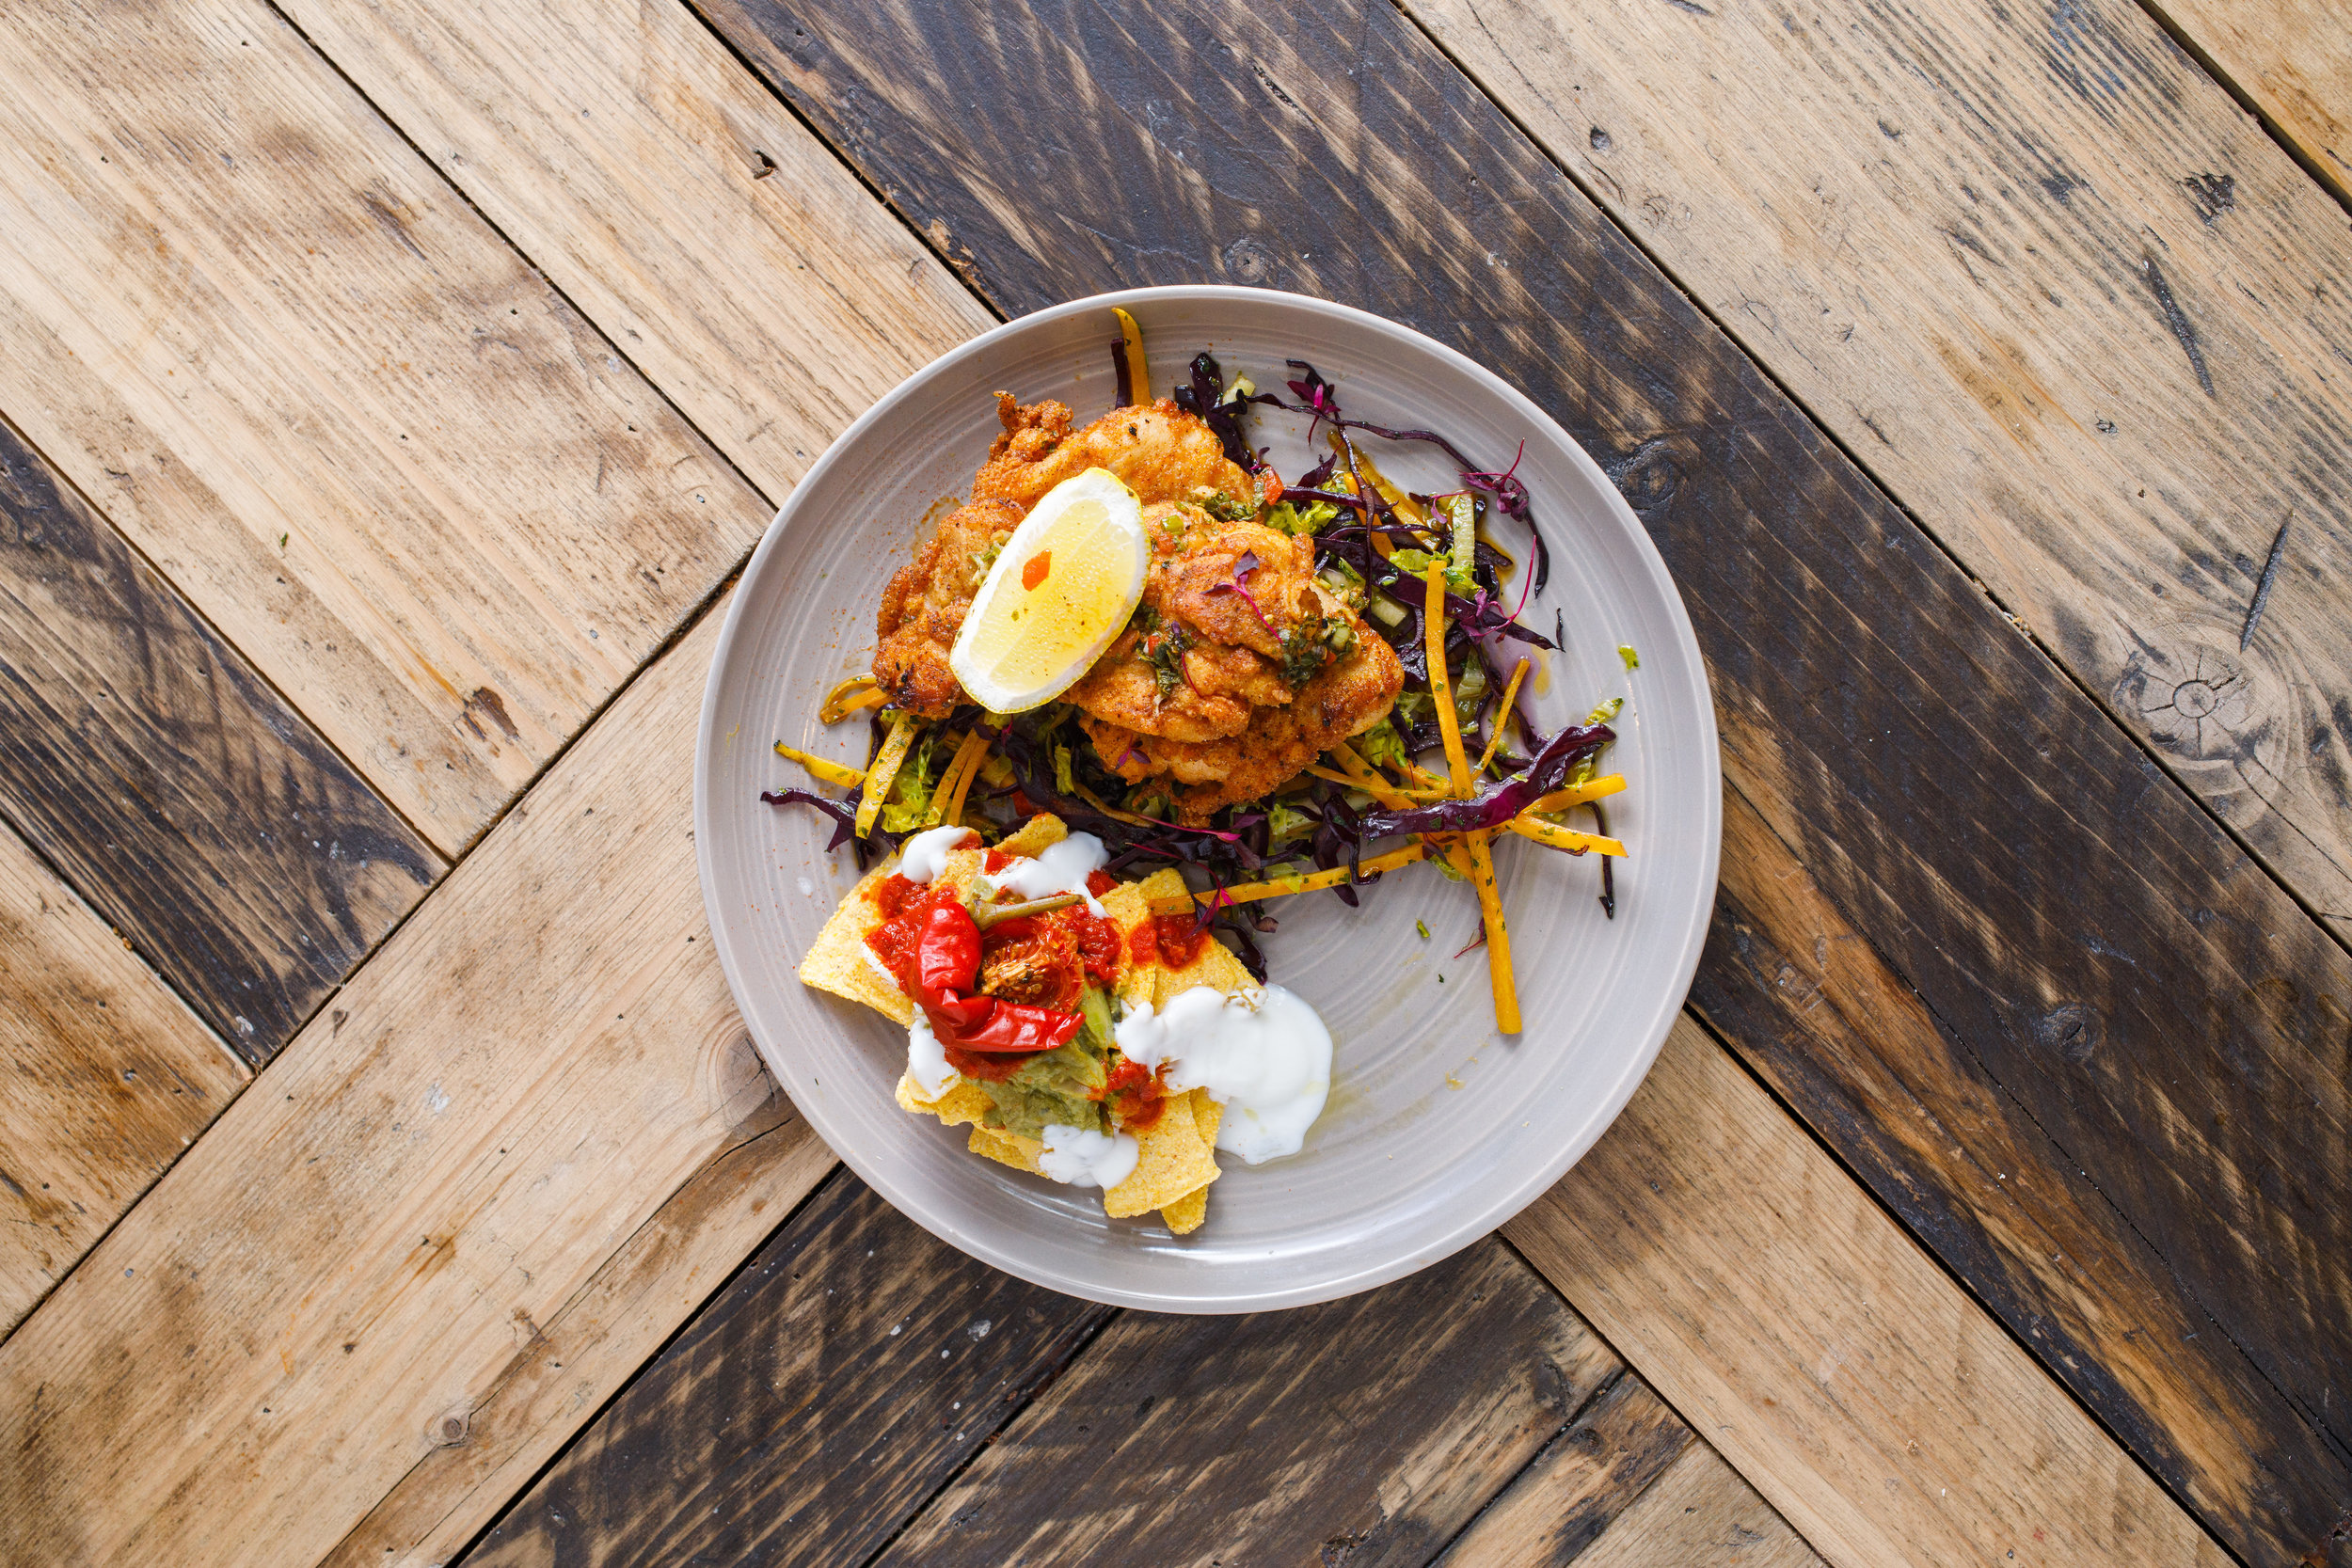 Get that Friday feeling with some fiery Mexican crispy fried chicken with a smoke adobo chilli glaze sauce. Our veggie and vegan option? Refried pinto bean fritter with smoked pickled chilli, puy lentil and mango salsa picante. Both come with shredded slaw salad, nachos, salsa, sour cream (meat and veggie only) and guacamole.